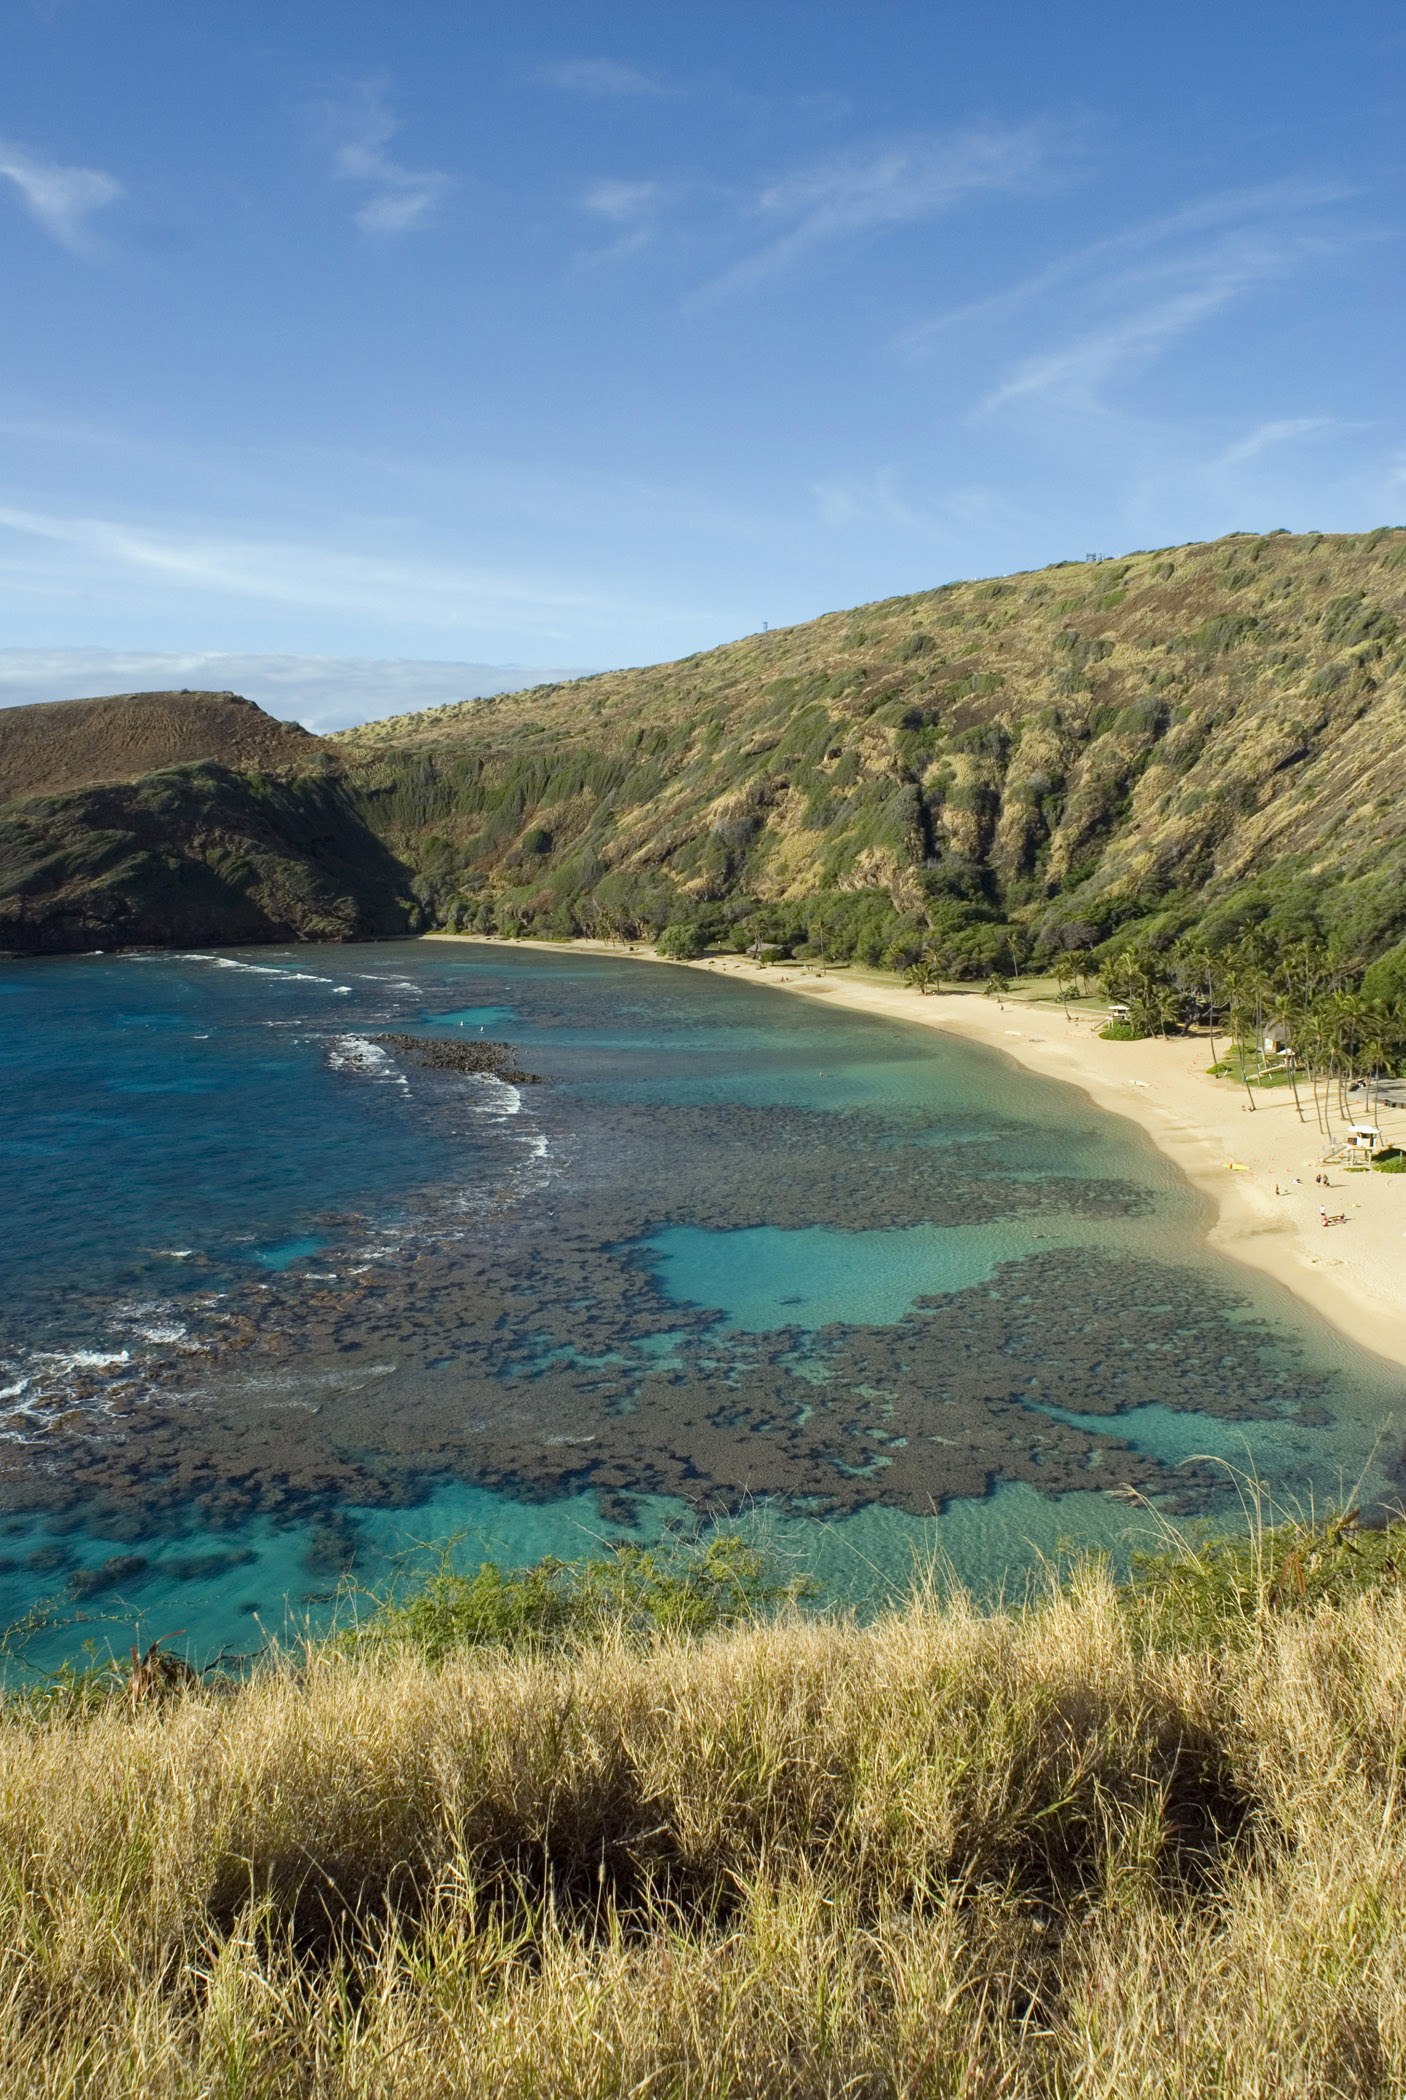 Beautiful Blue Water Hanauma Bay Beach Overview with Grassy Cliffs on Sides. Isolated on Blue Sky Background.